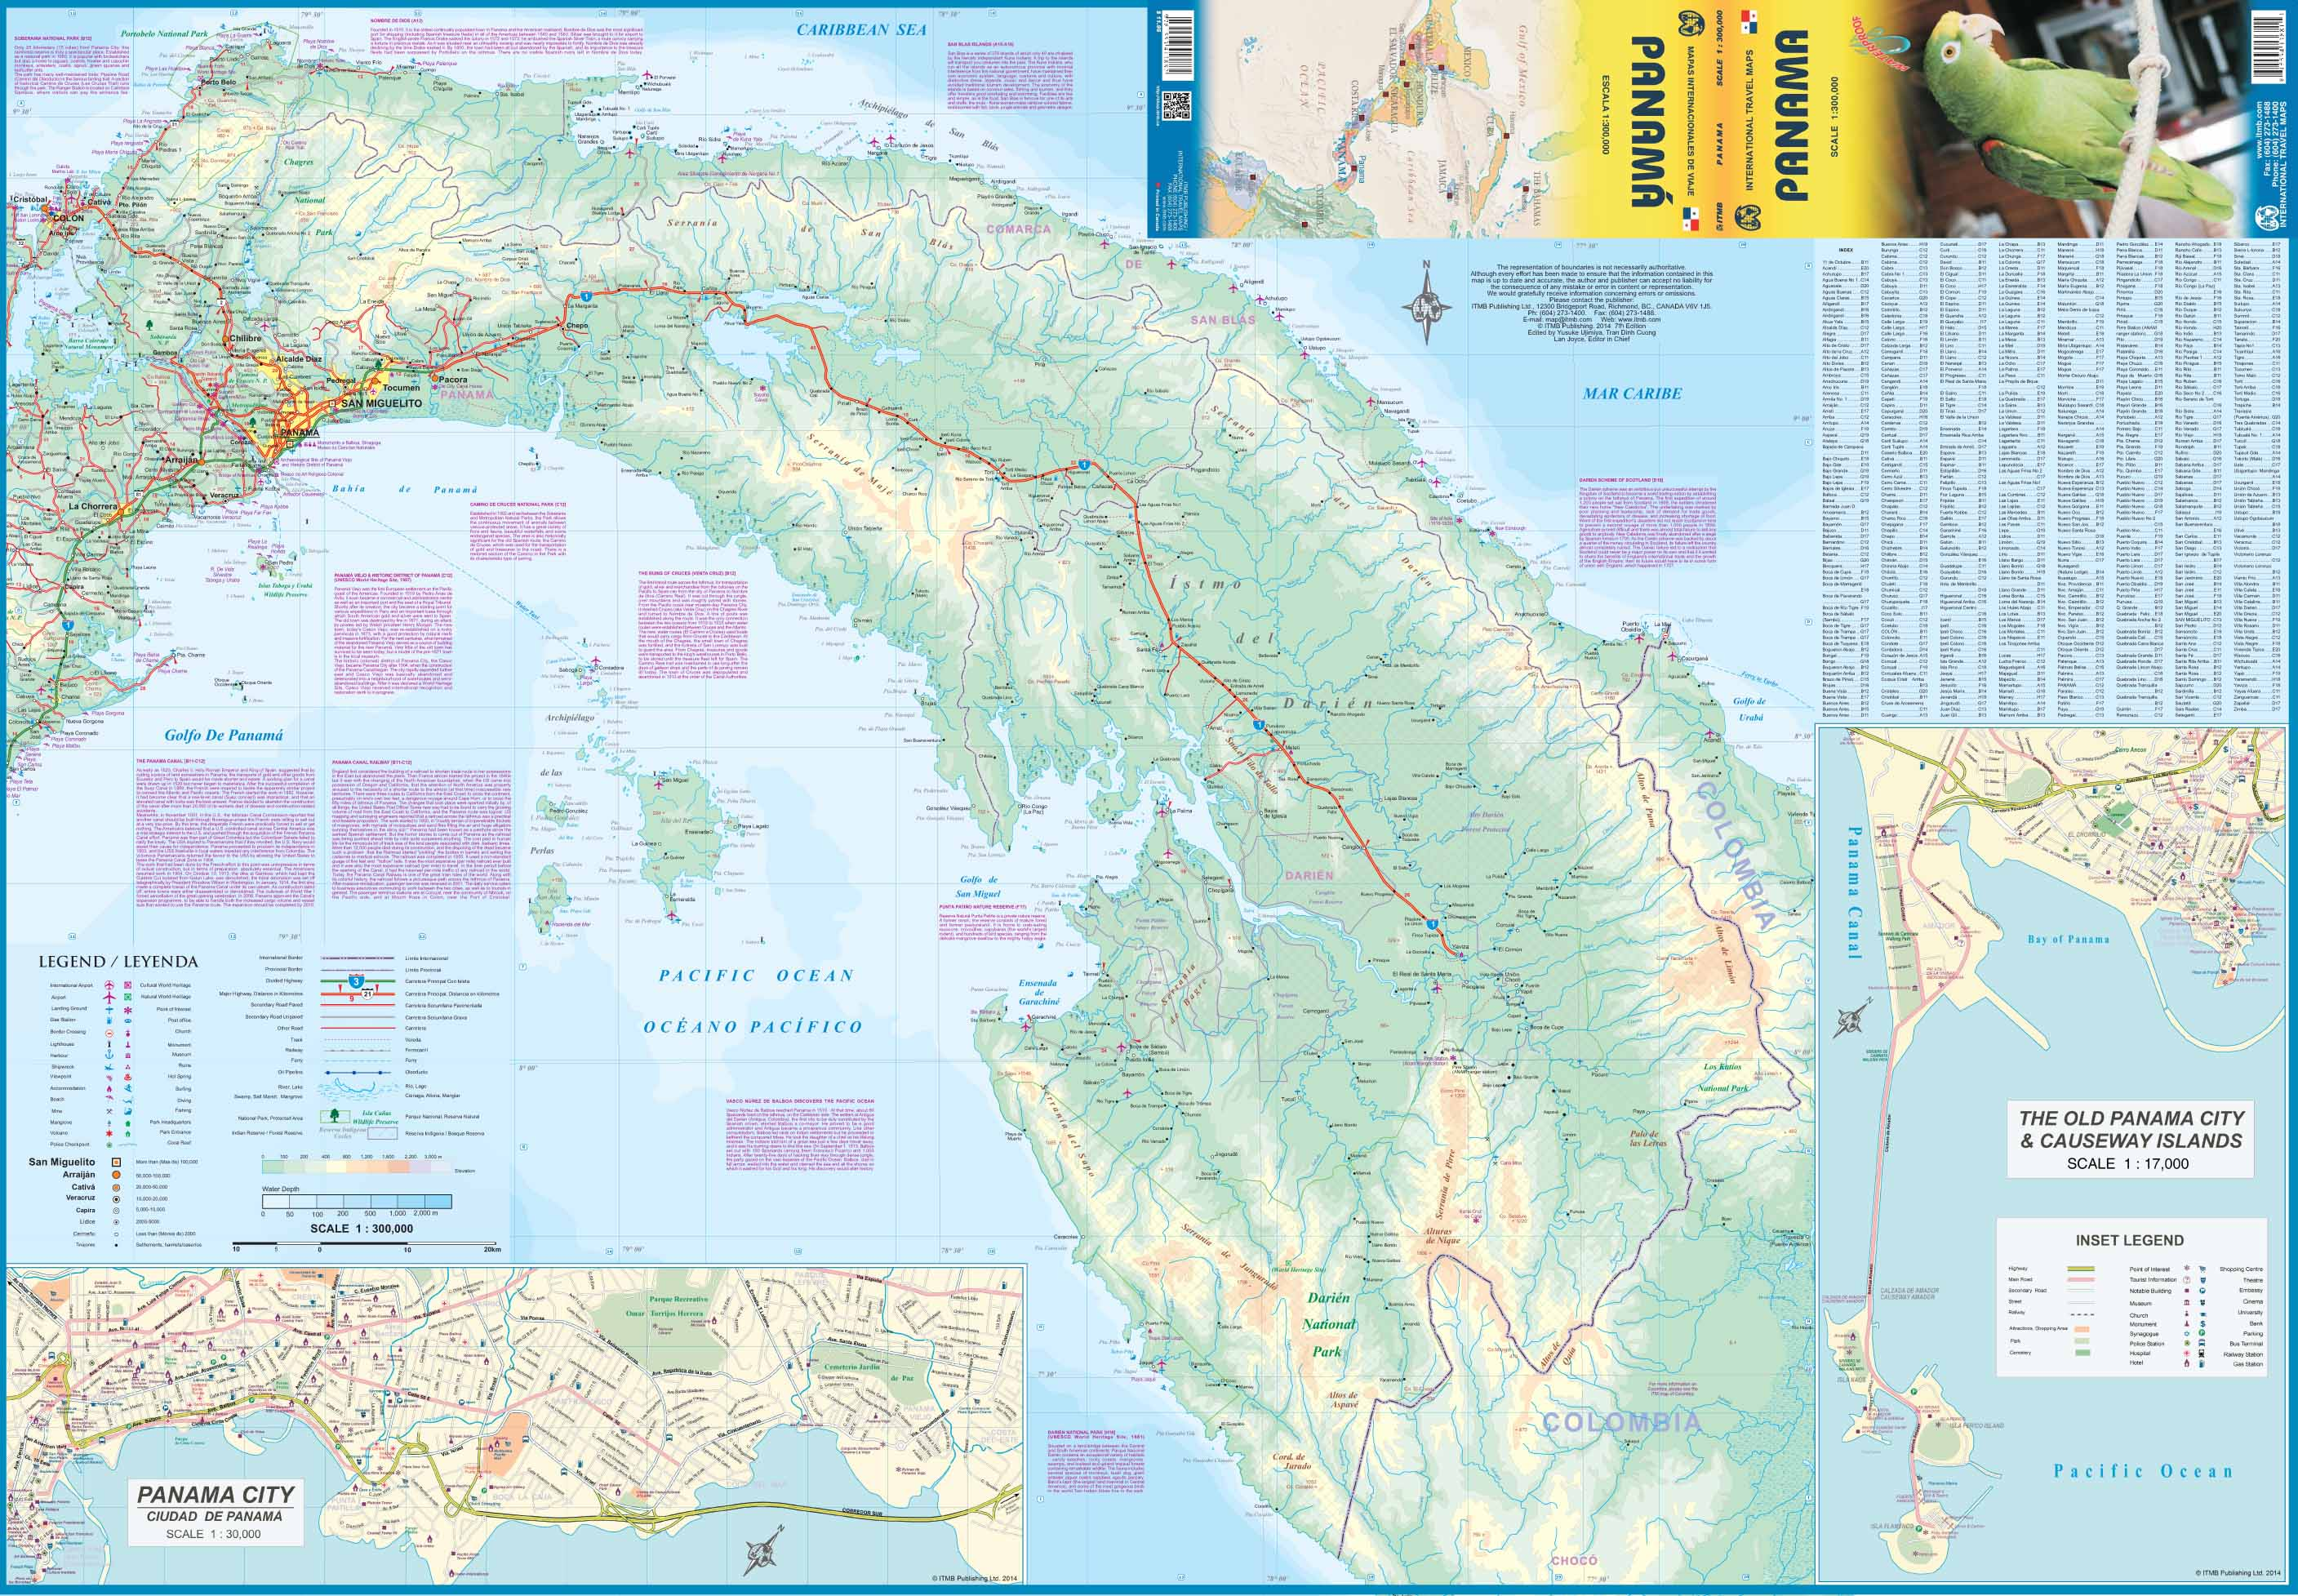 Topographic Map Of Panama.Maps For Travel City Maps Road Maps Guides Globes Topographic Maps